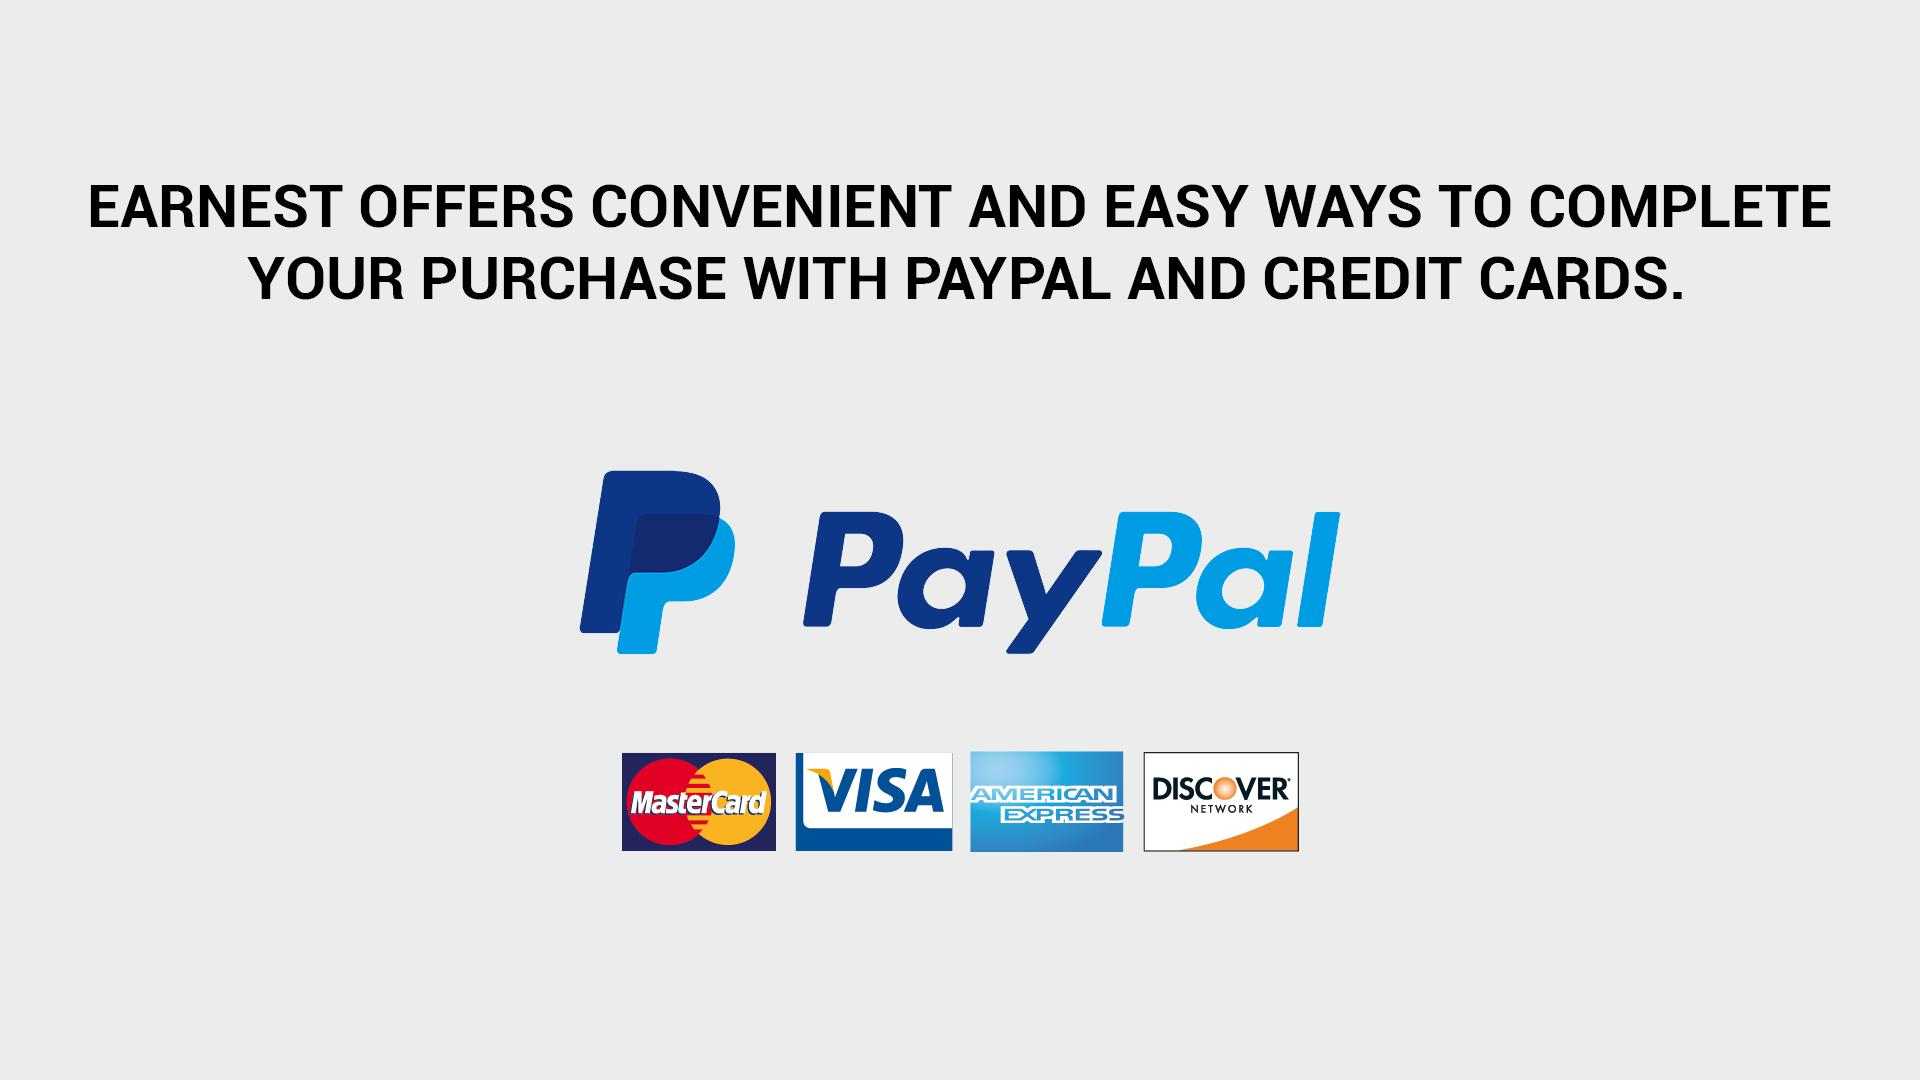 What's New on the Web Part 2 - Complete your online purchase with PayPal and Credit Card